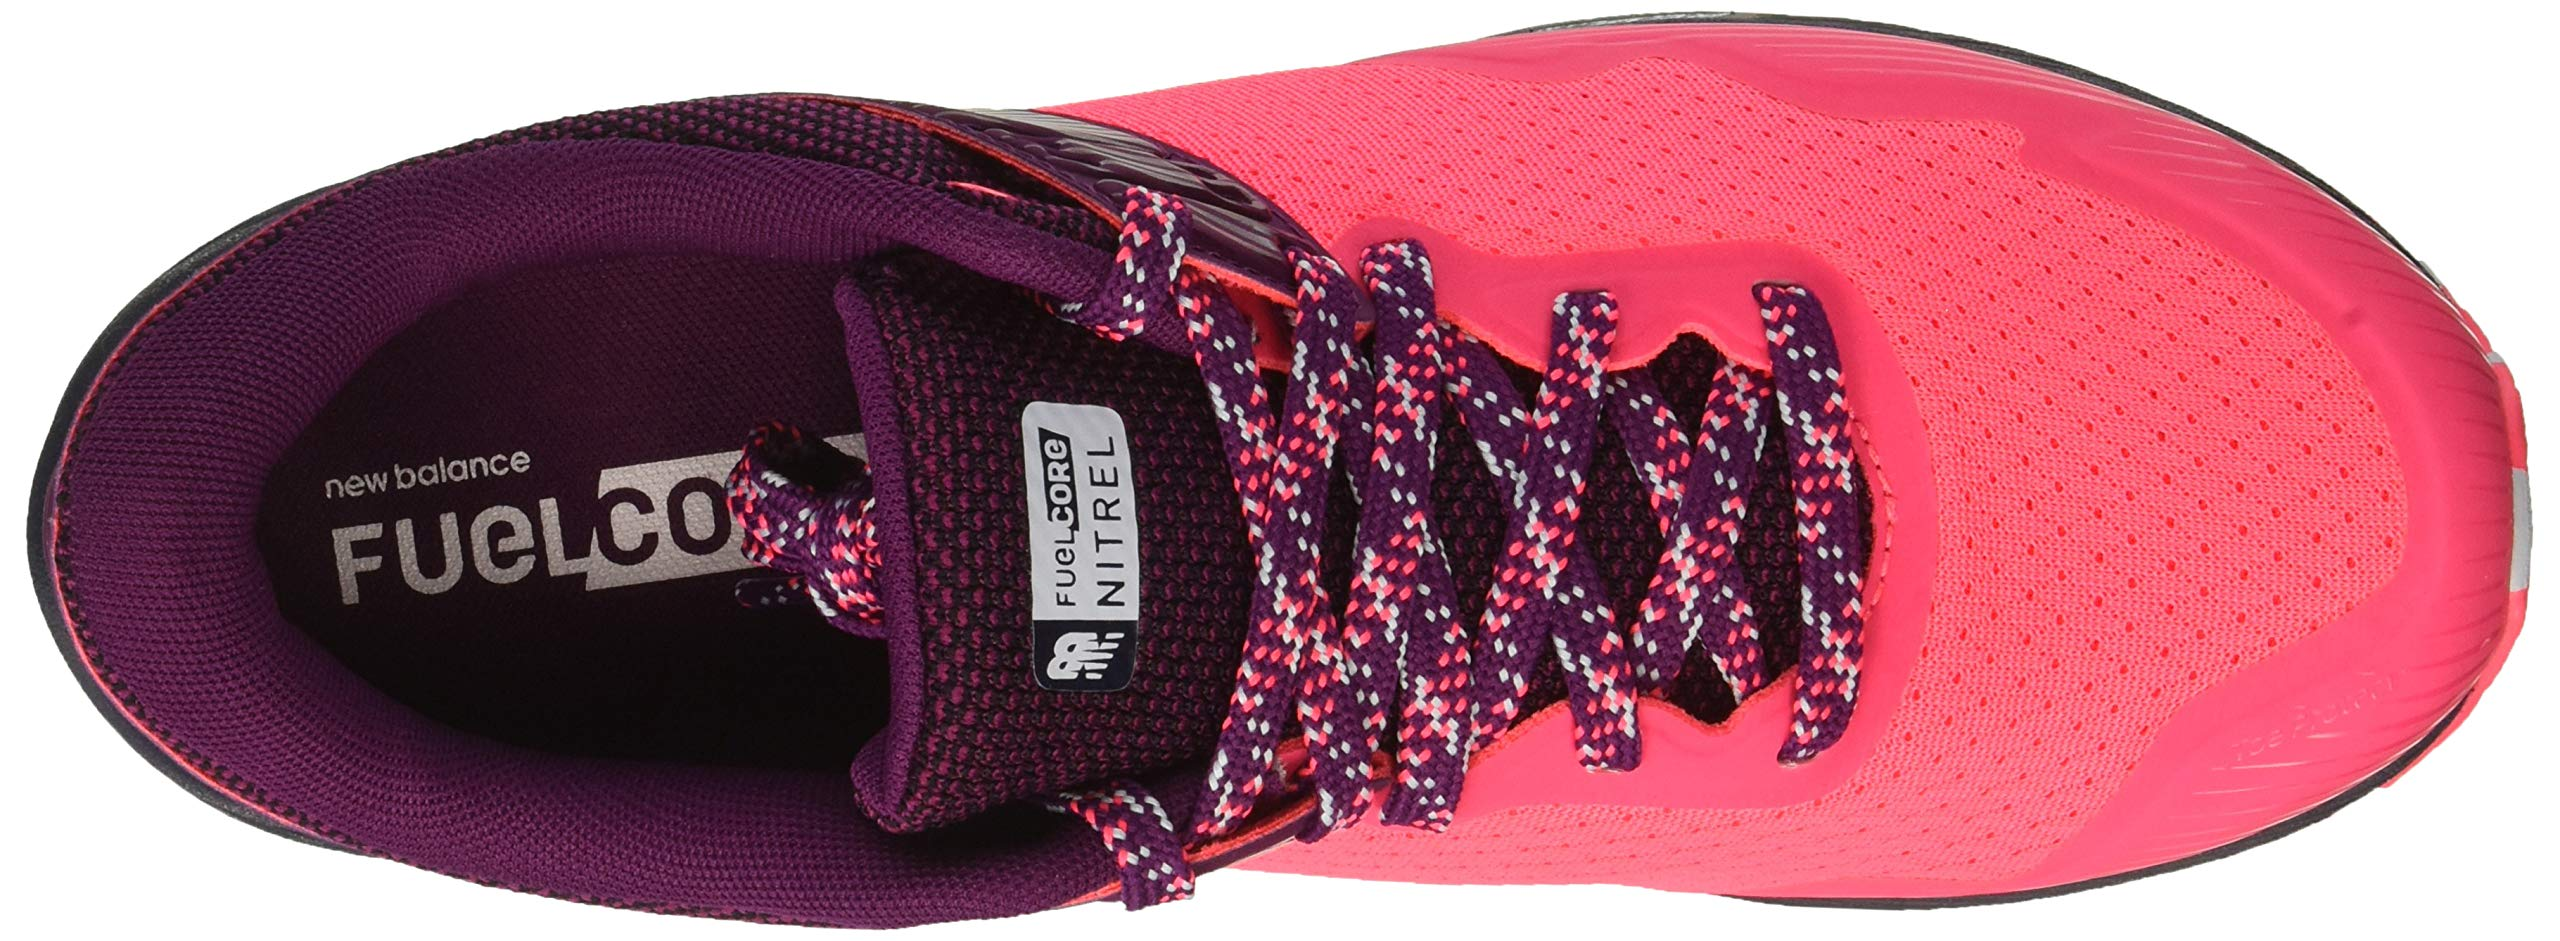 New Balance Women's Nitrel V2 FuelCore Trail Running Shoe Pink zing/Claret/Pigment 5 B US by New Balance (Image #8)